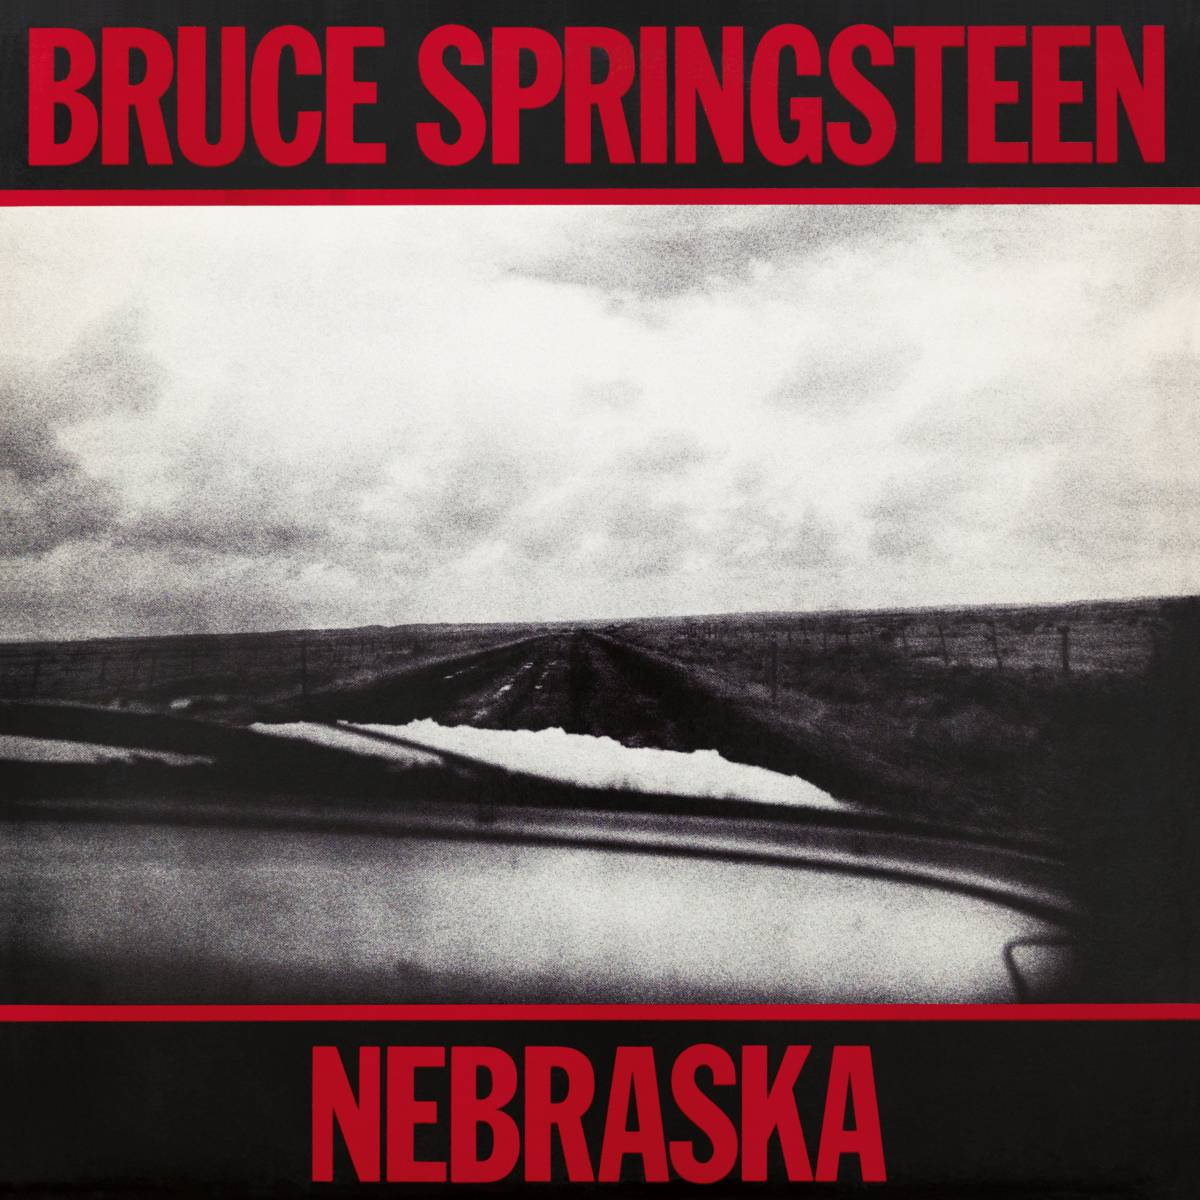 Springsteen_Nebraska portada de disco rock